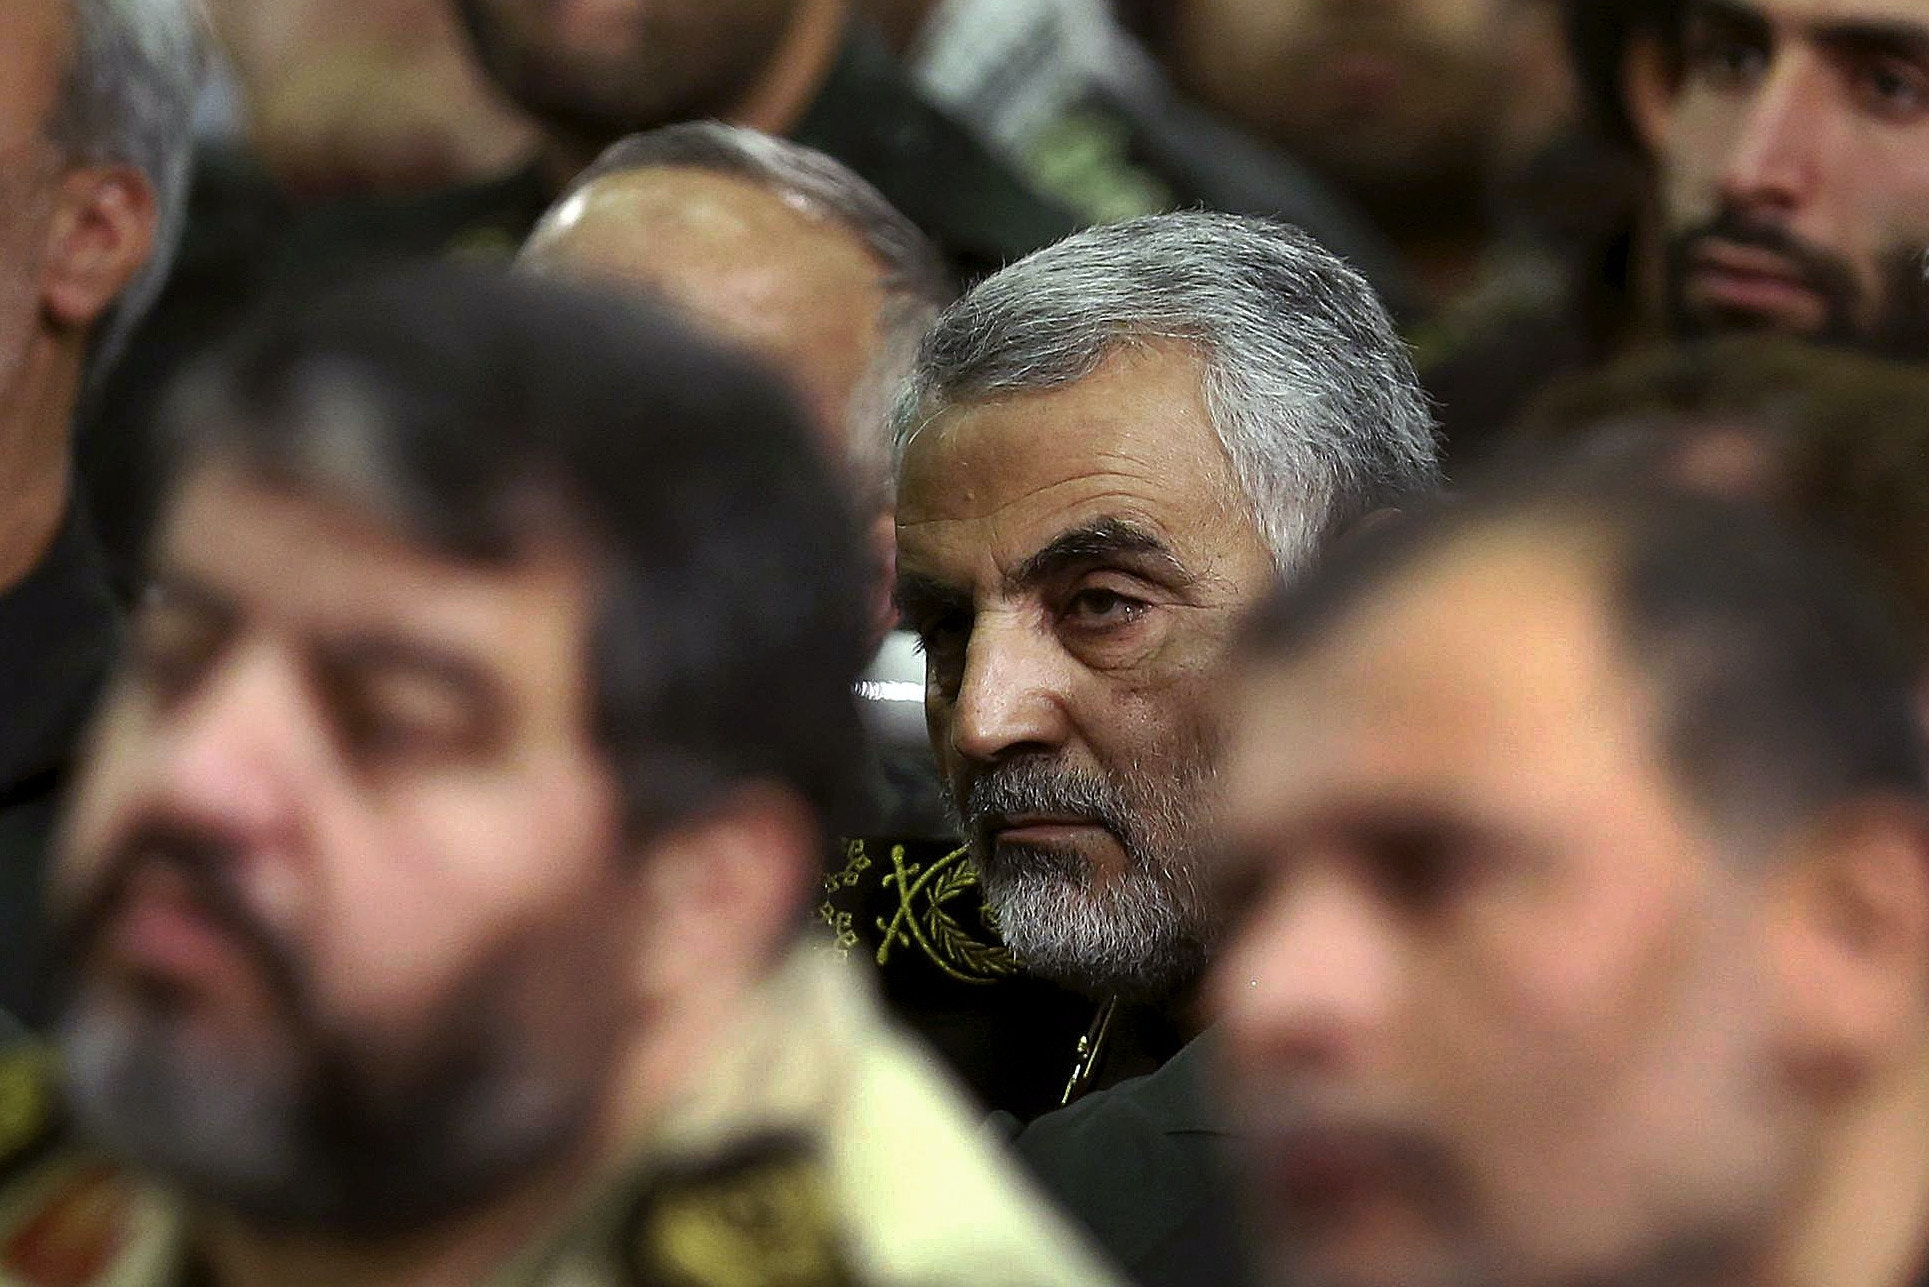 Qassem Suleimani Major General the Commander of the Quds Force in the Iranian Army of the Guardians of the Islamic Revolution, Tehran-Iran 10/0/2012/AY-COLLECTION_112013/Credit:AY-COLLECTION/SIPA/1503091128 (Sipa via AP Images)